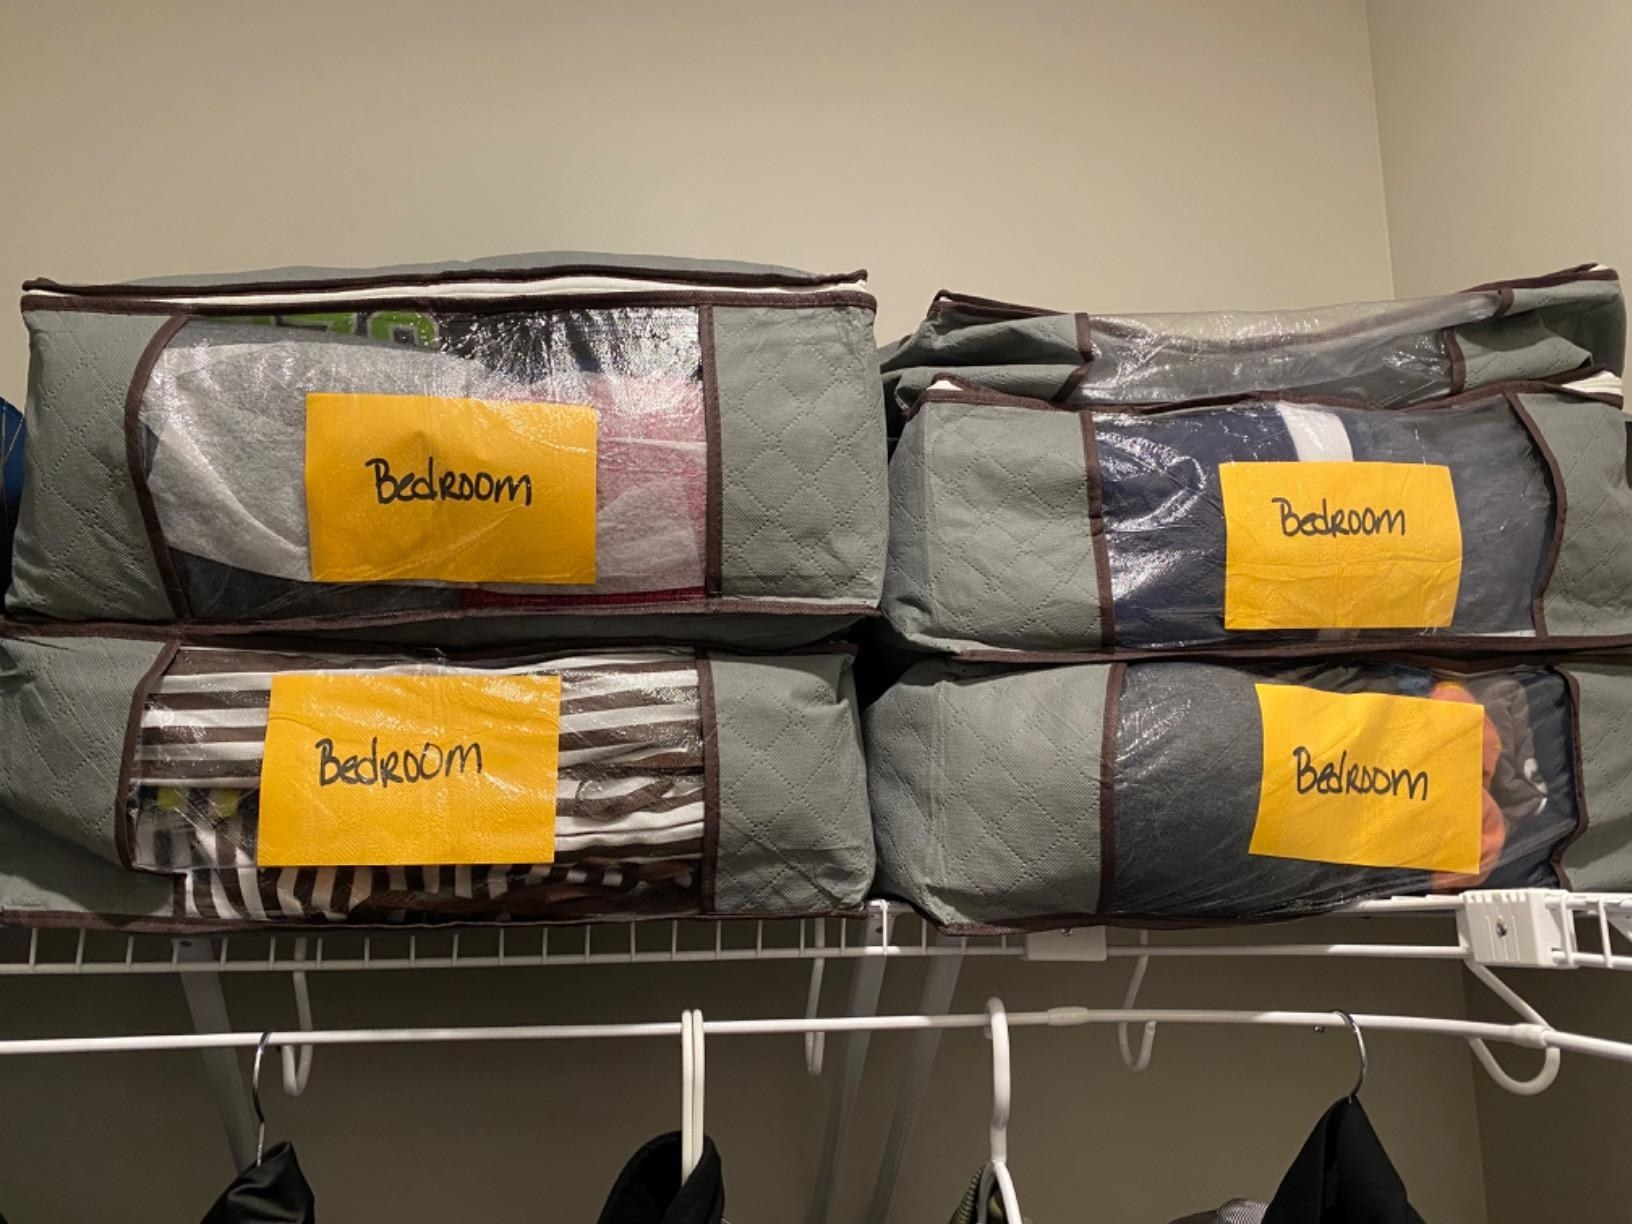 reviewer photo showing foldable storage bags filled with clothing and labeled on top shelf of their closet